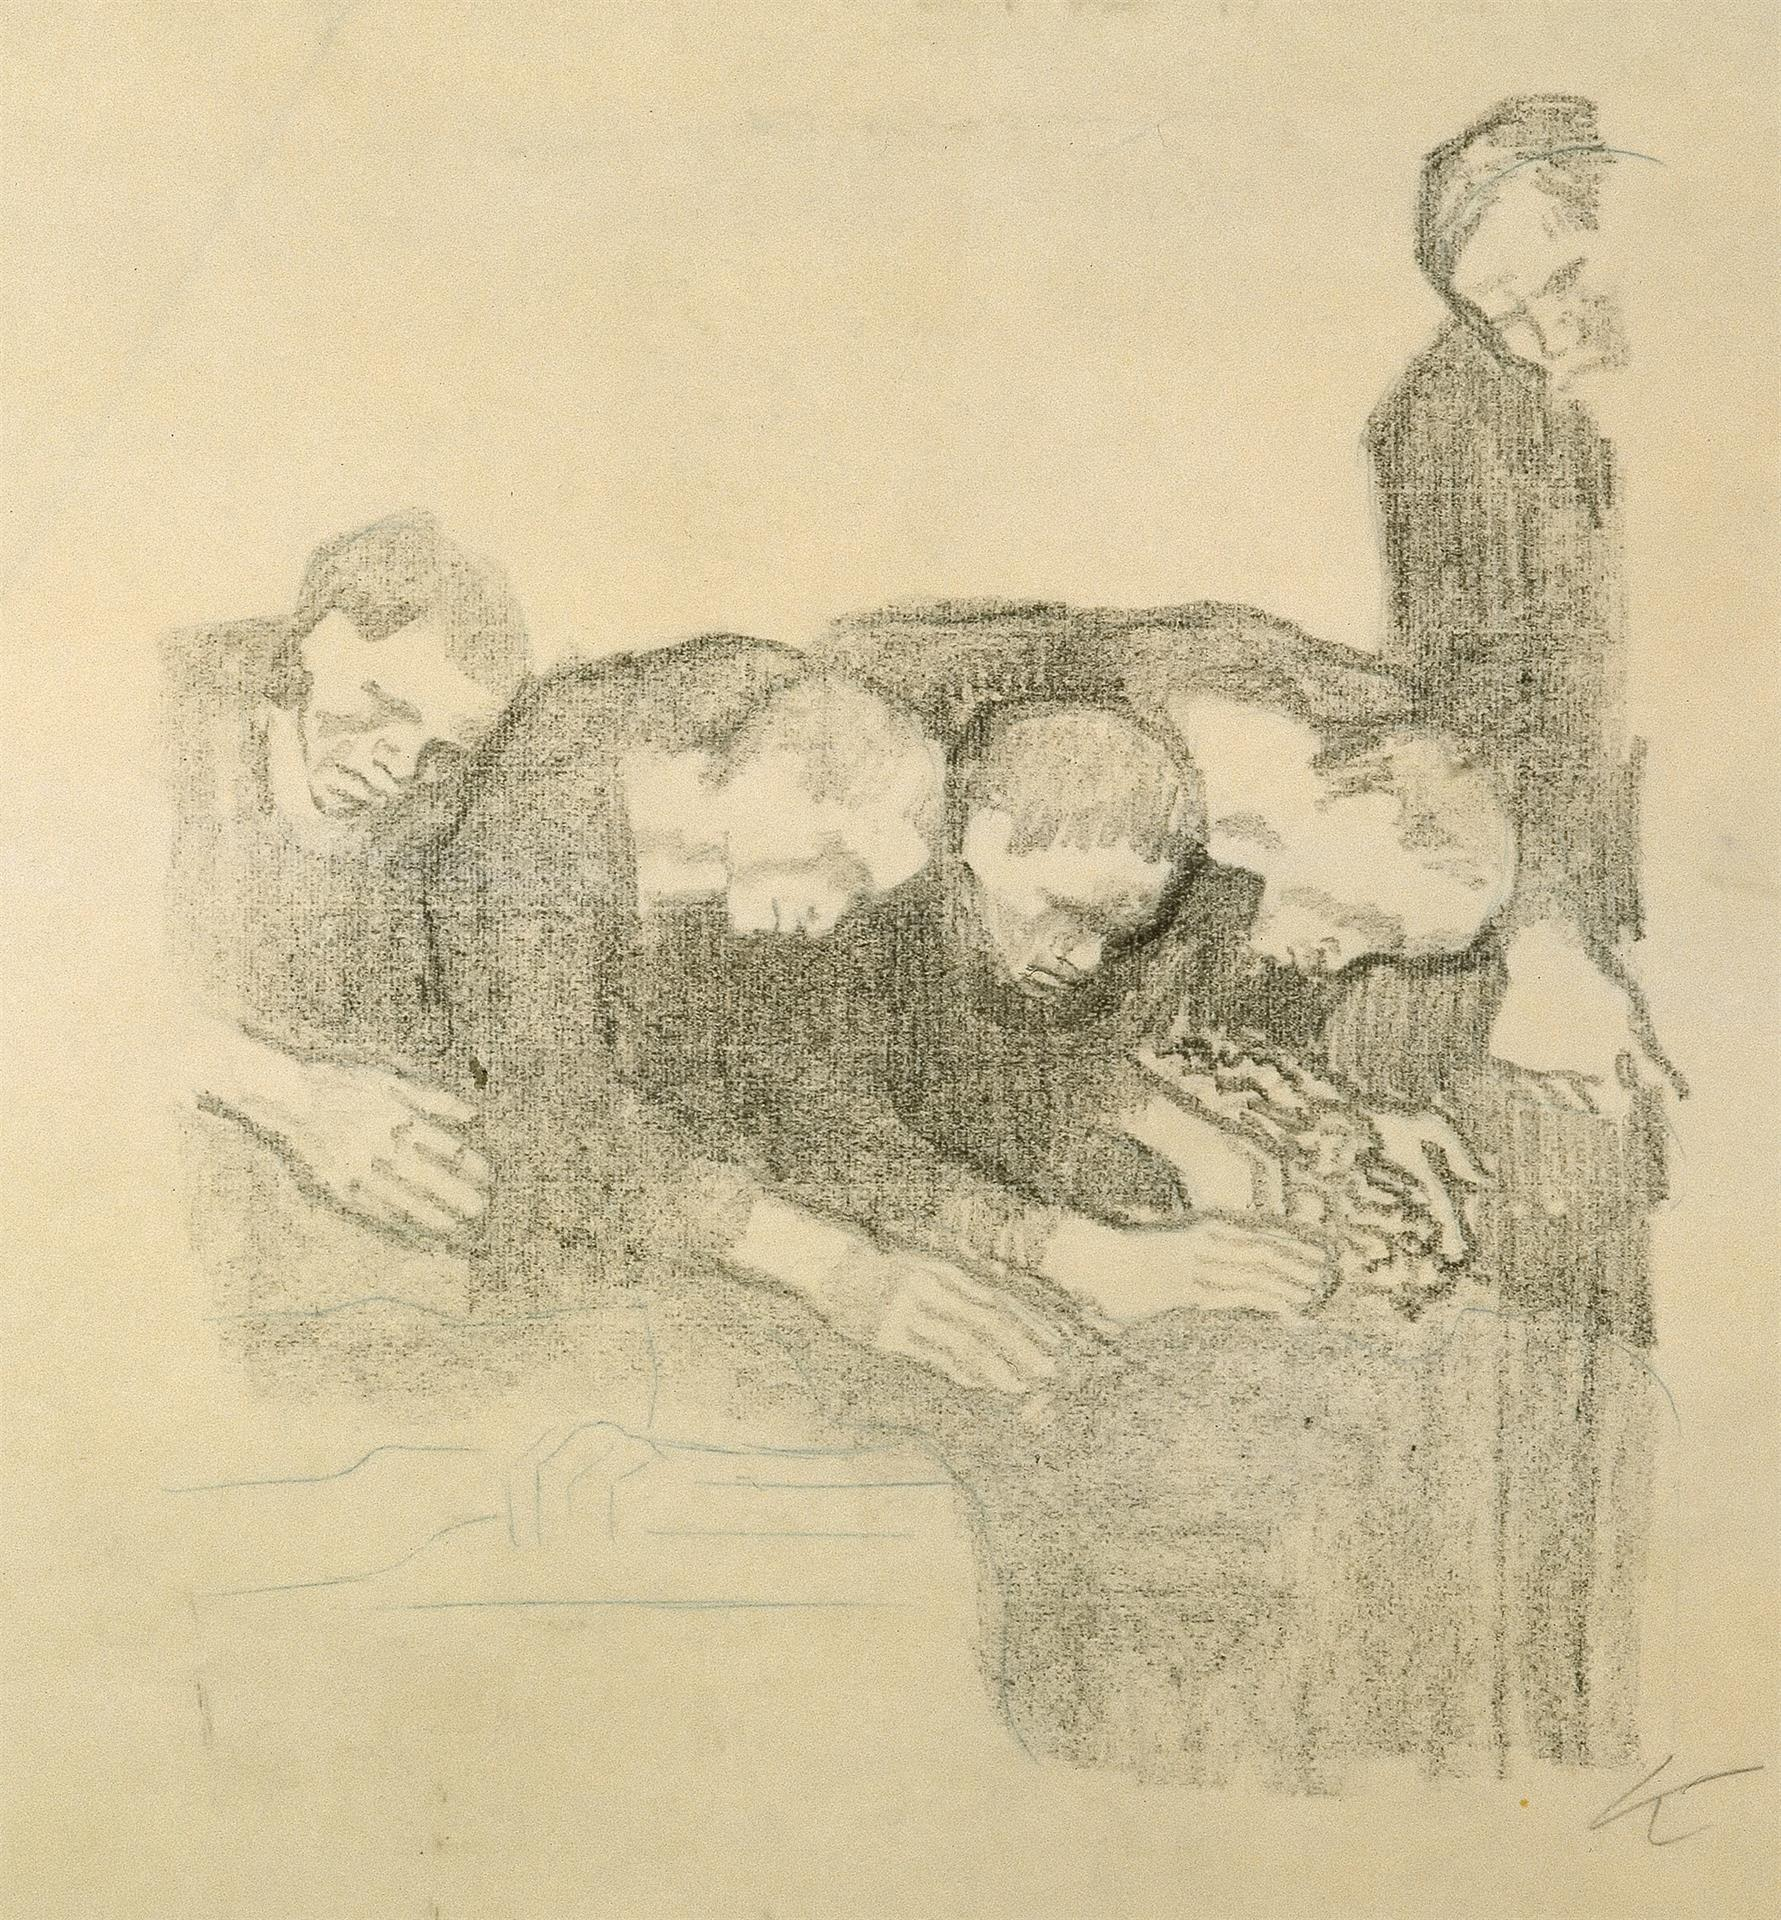 Käthe Kollwitz, In Memory of Ludwig Frank, rejected second version, 1914, crayon lithograph (transfer of an unknown drawing on ribbed laid paper), Kn 131, Cologne Kollwitz Collection © Käthe Kollwitz Museum Köln